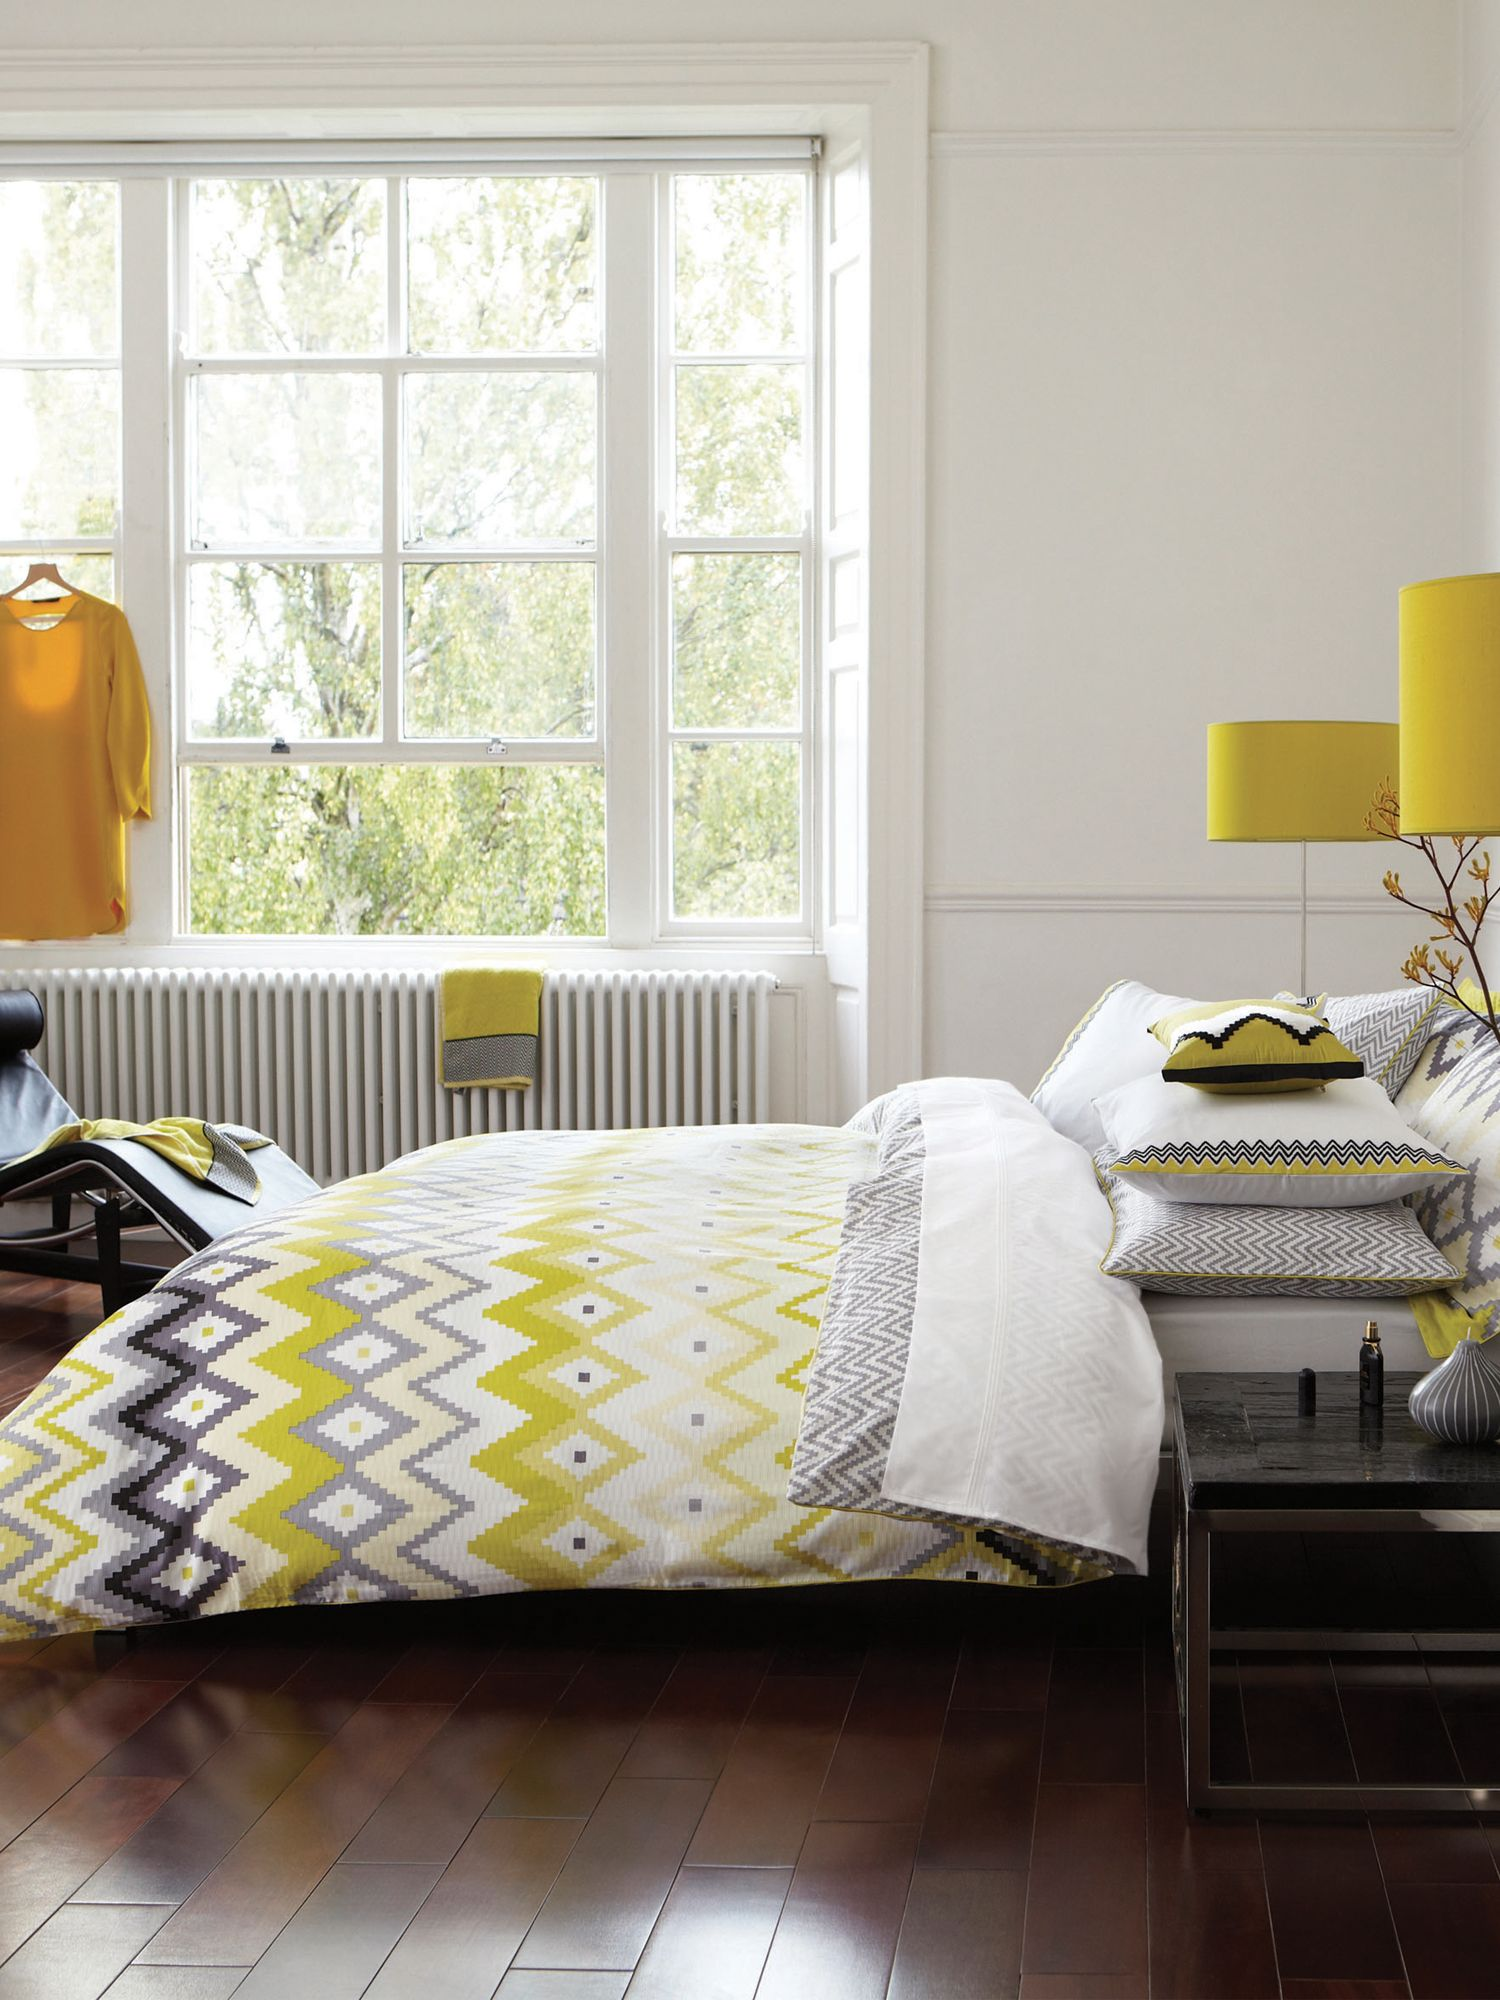 Altuza bed linen in citrus